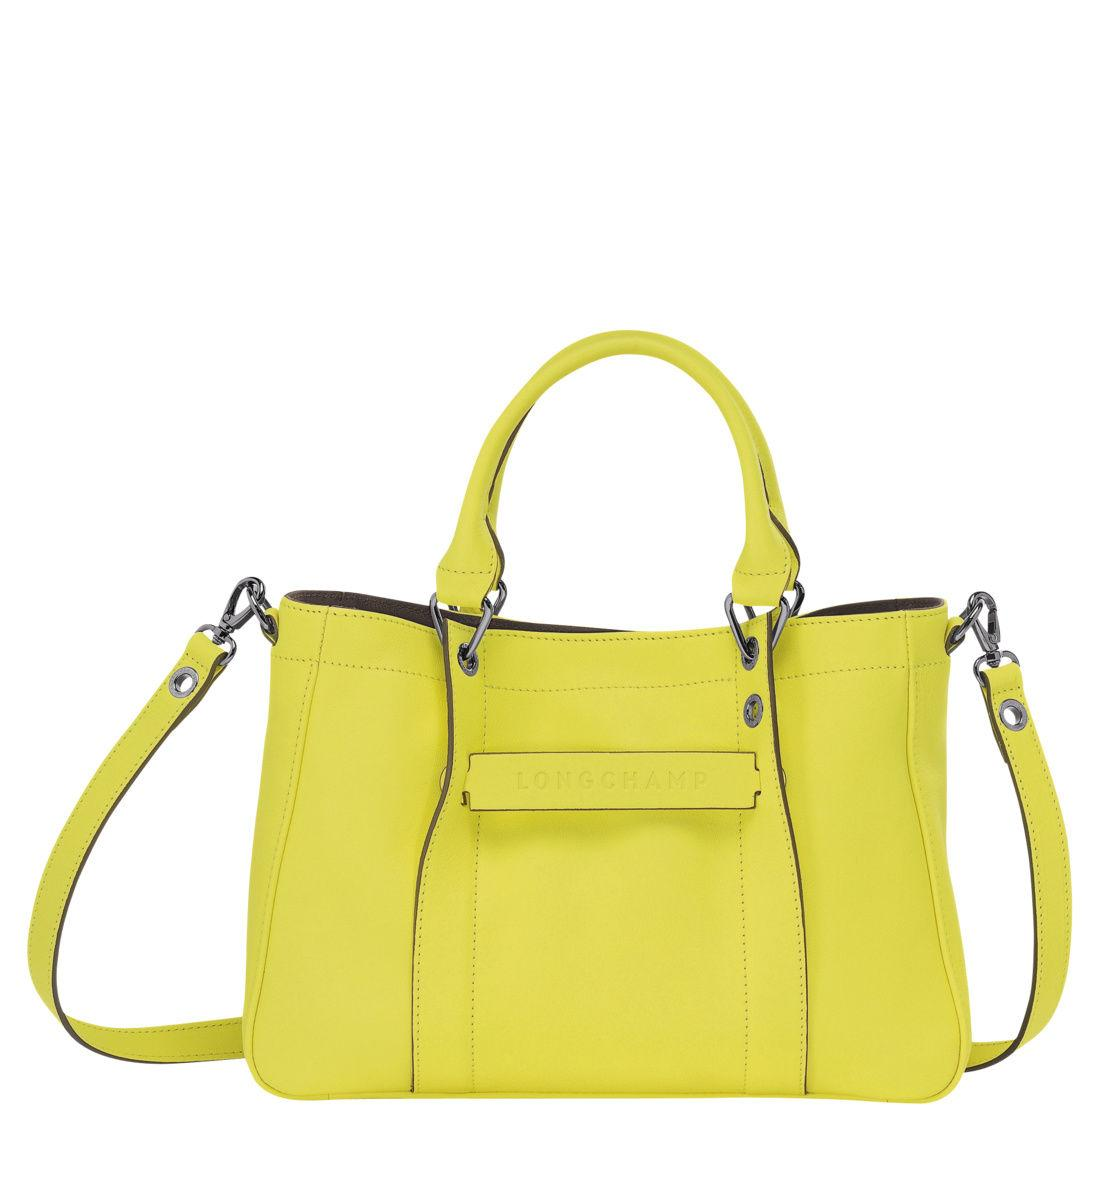 3d Jaune S Lyst Sac Coloris Longchamp Main Porté En HD29IE